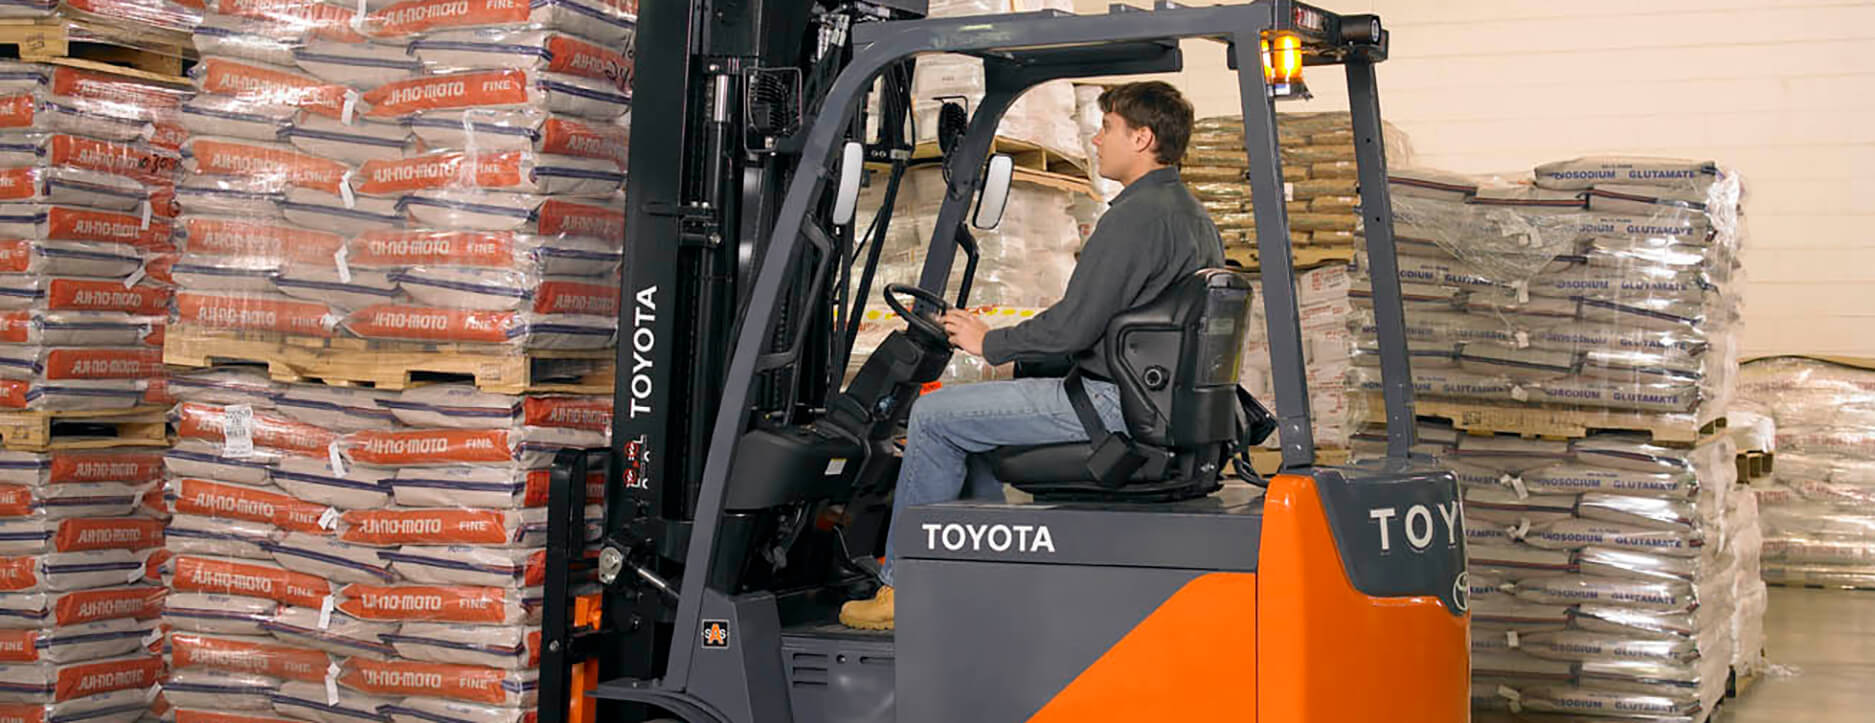 Forklift Seatbelts Save Lives Every Day Toyota Forklifts